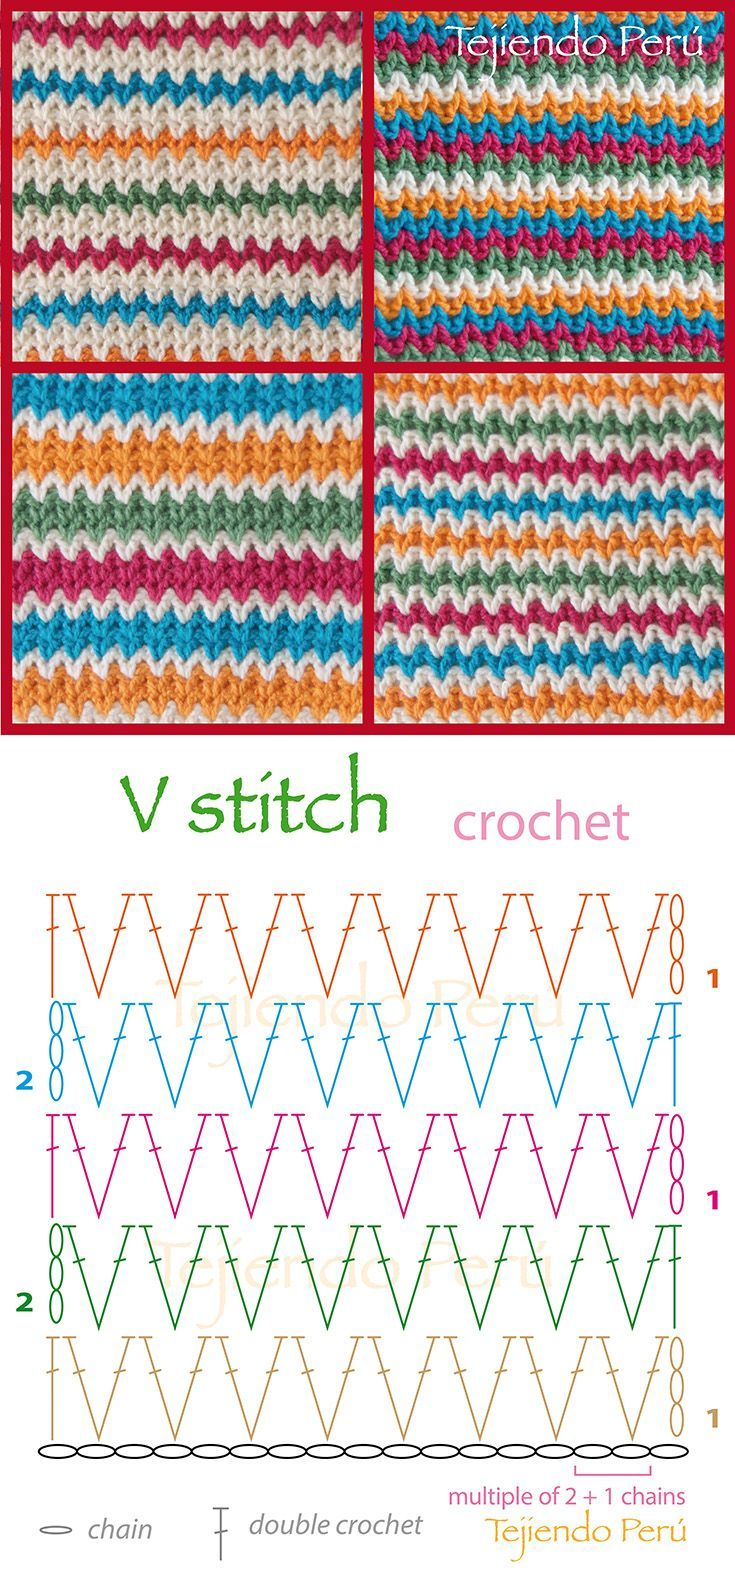 Crochet V stitch pattern (diagram or chart)!: